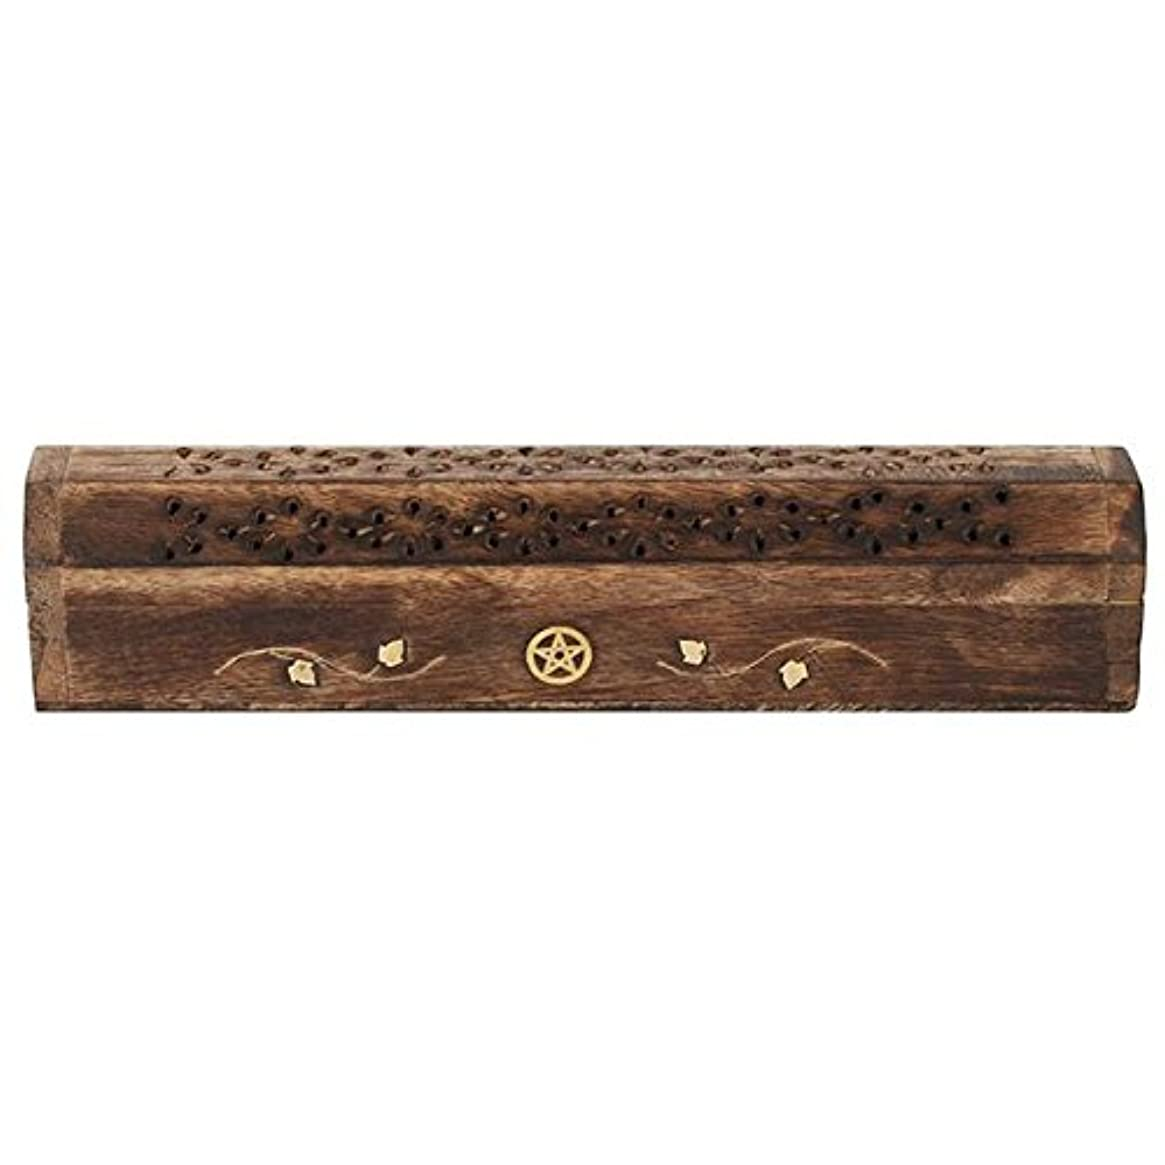 Mangowood Incense Box with Brass Pentagram Inlay